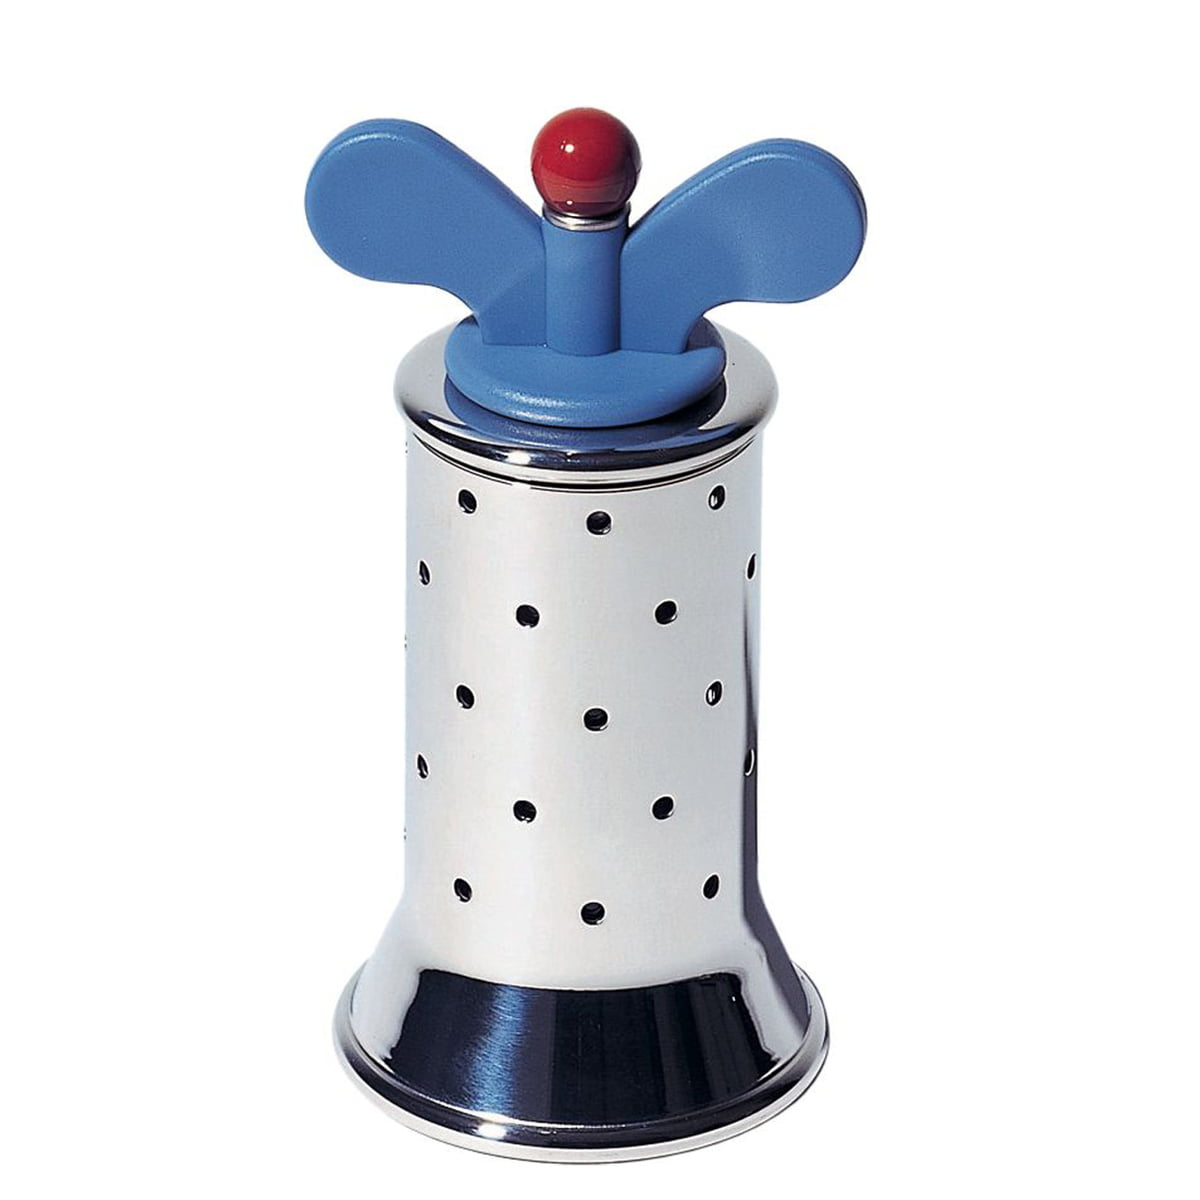 spare parts for the alessi pepper grinder - spare parts for alessi pepper grinder